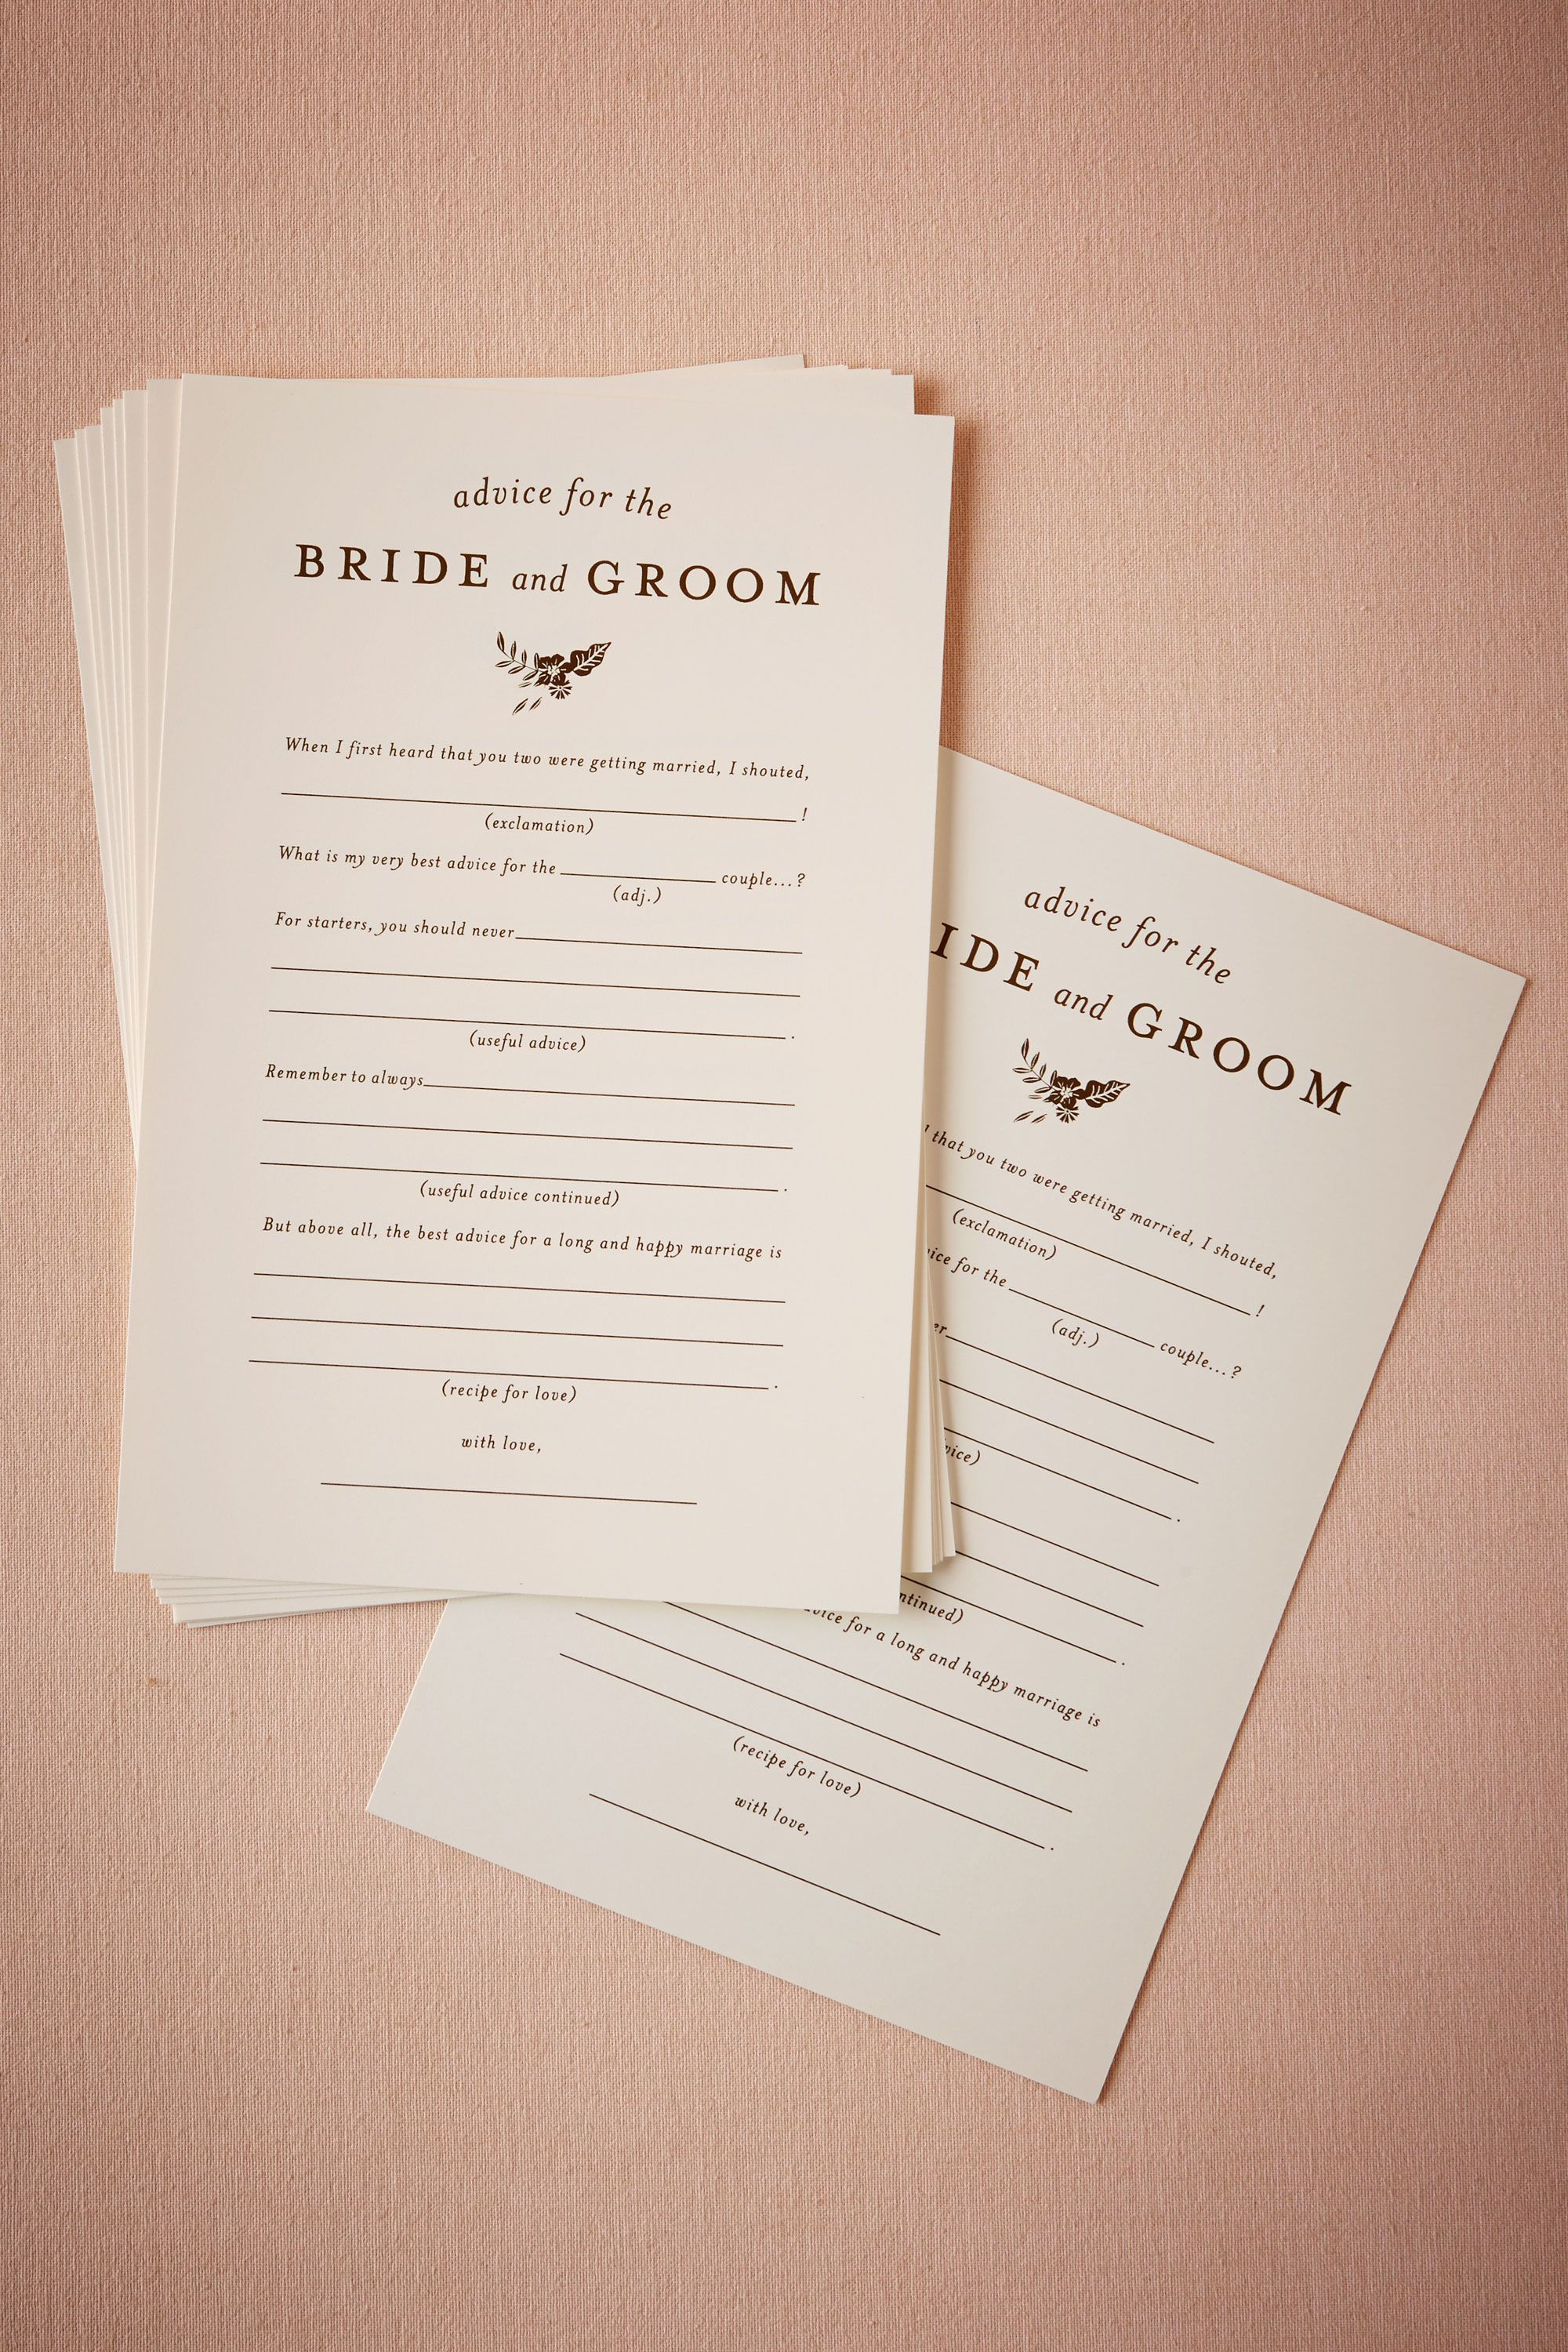 Advice for the Bride & Groom Notes (10)